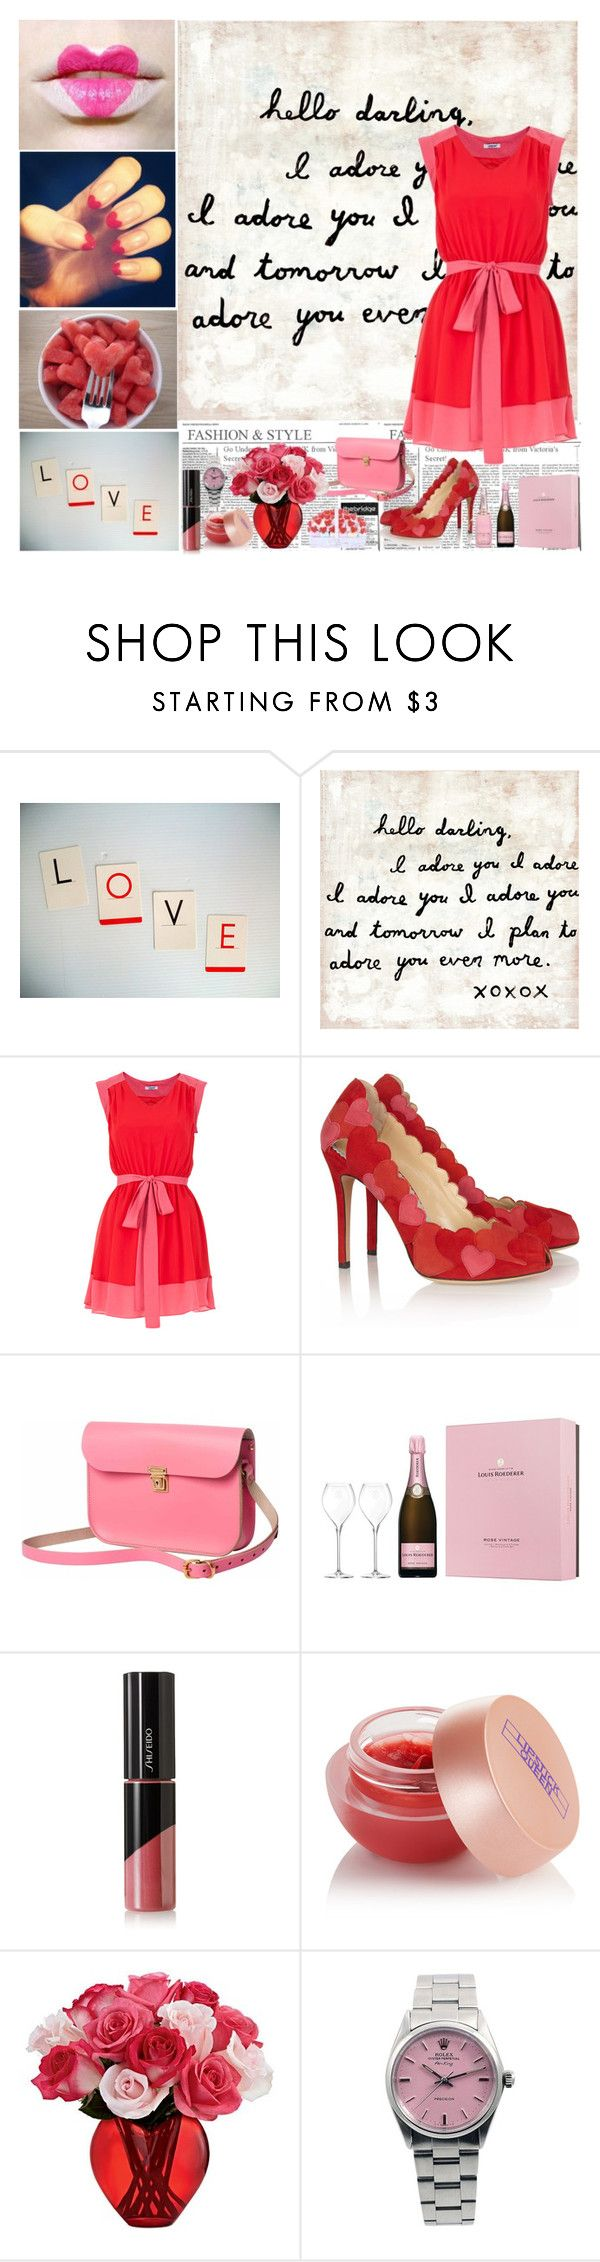 """LOVE is in te air... Feb 14th."" by sweetlittledoll ❤ liked on Polyvore featuring Sugarboo Designs, Suncoo, Charlotte Olympia, N'Damus, Shiseido, Lipstick Queen and Rolex"